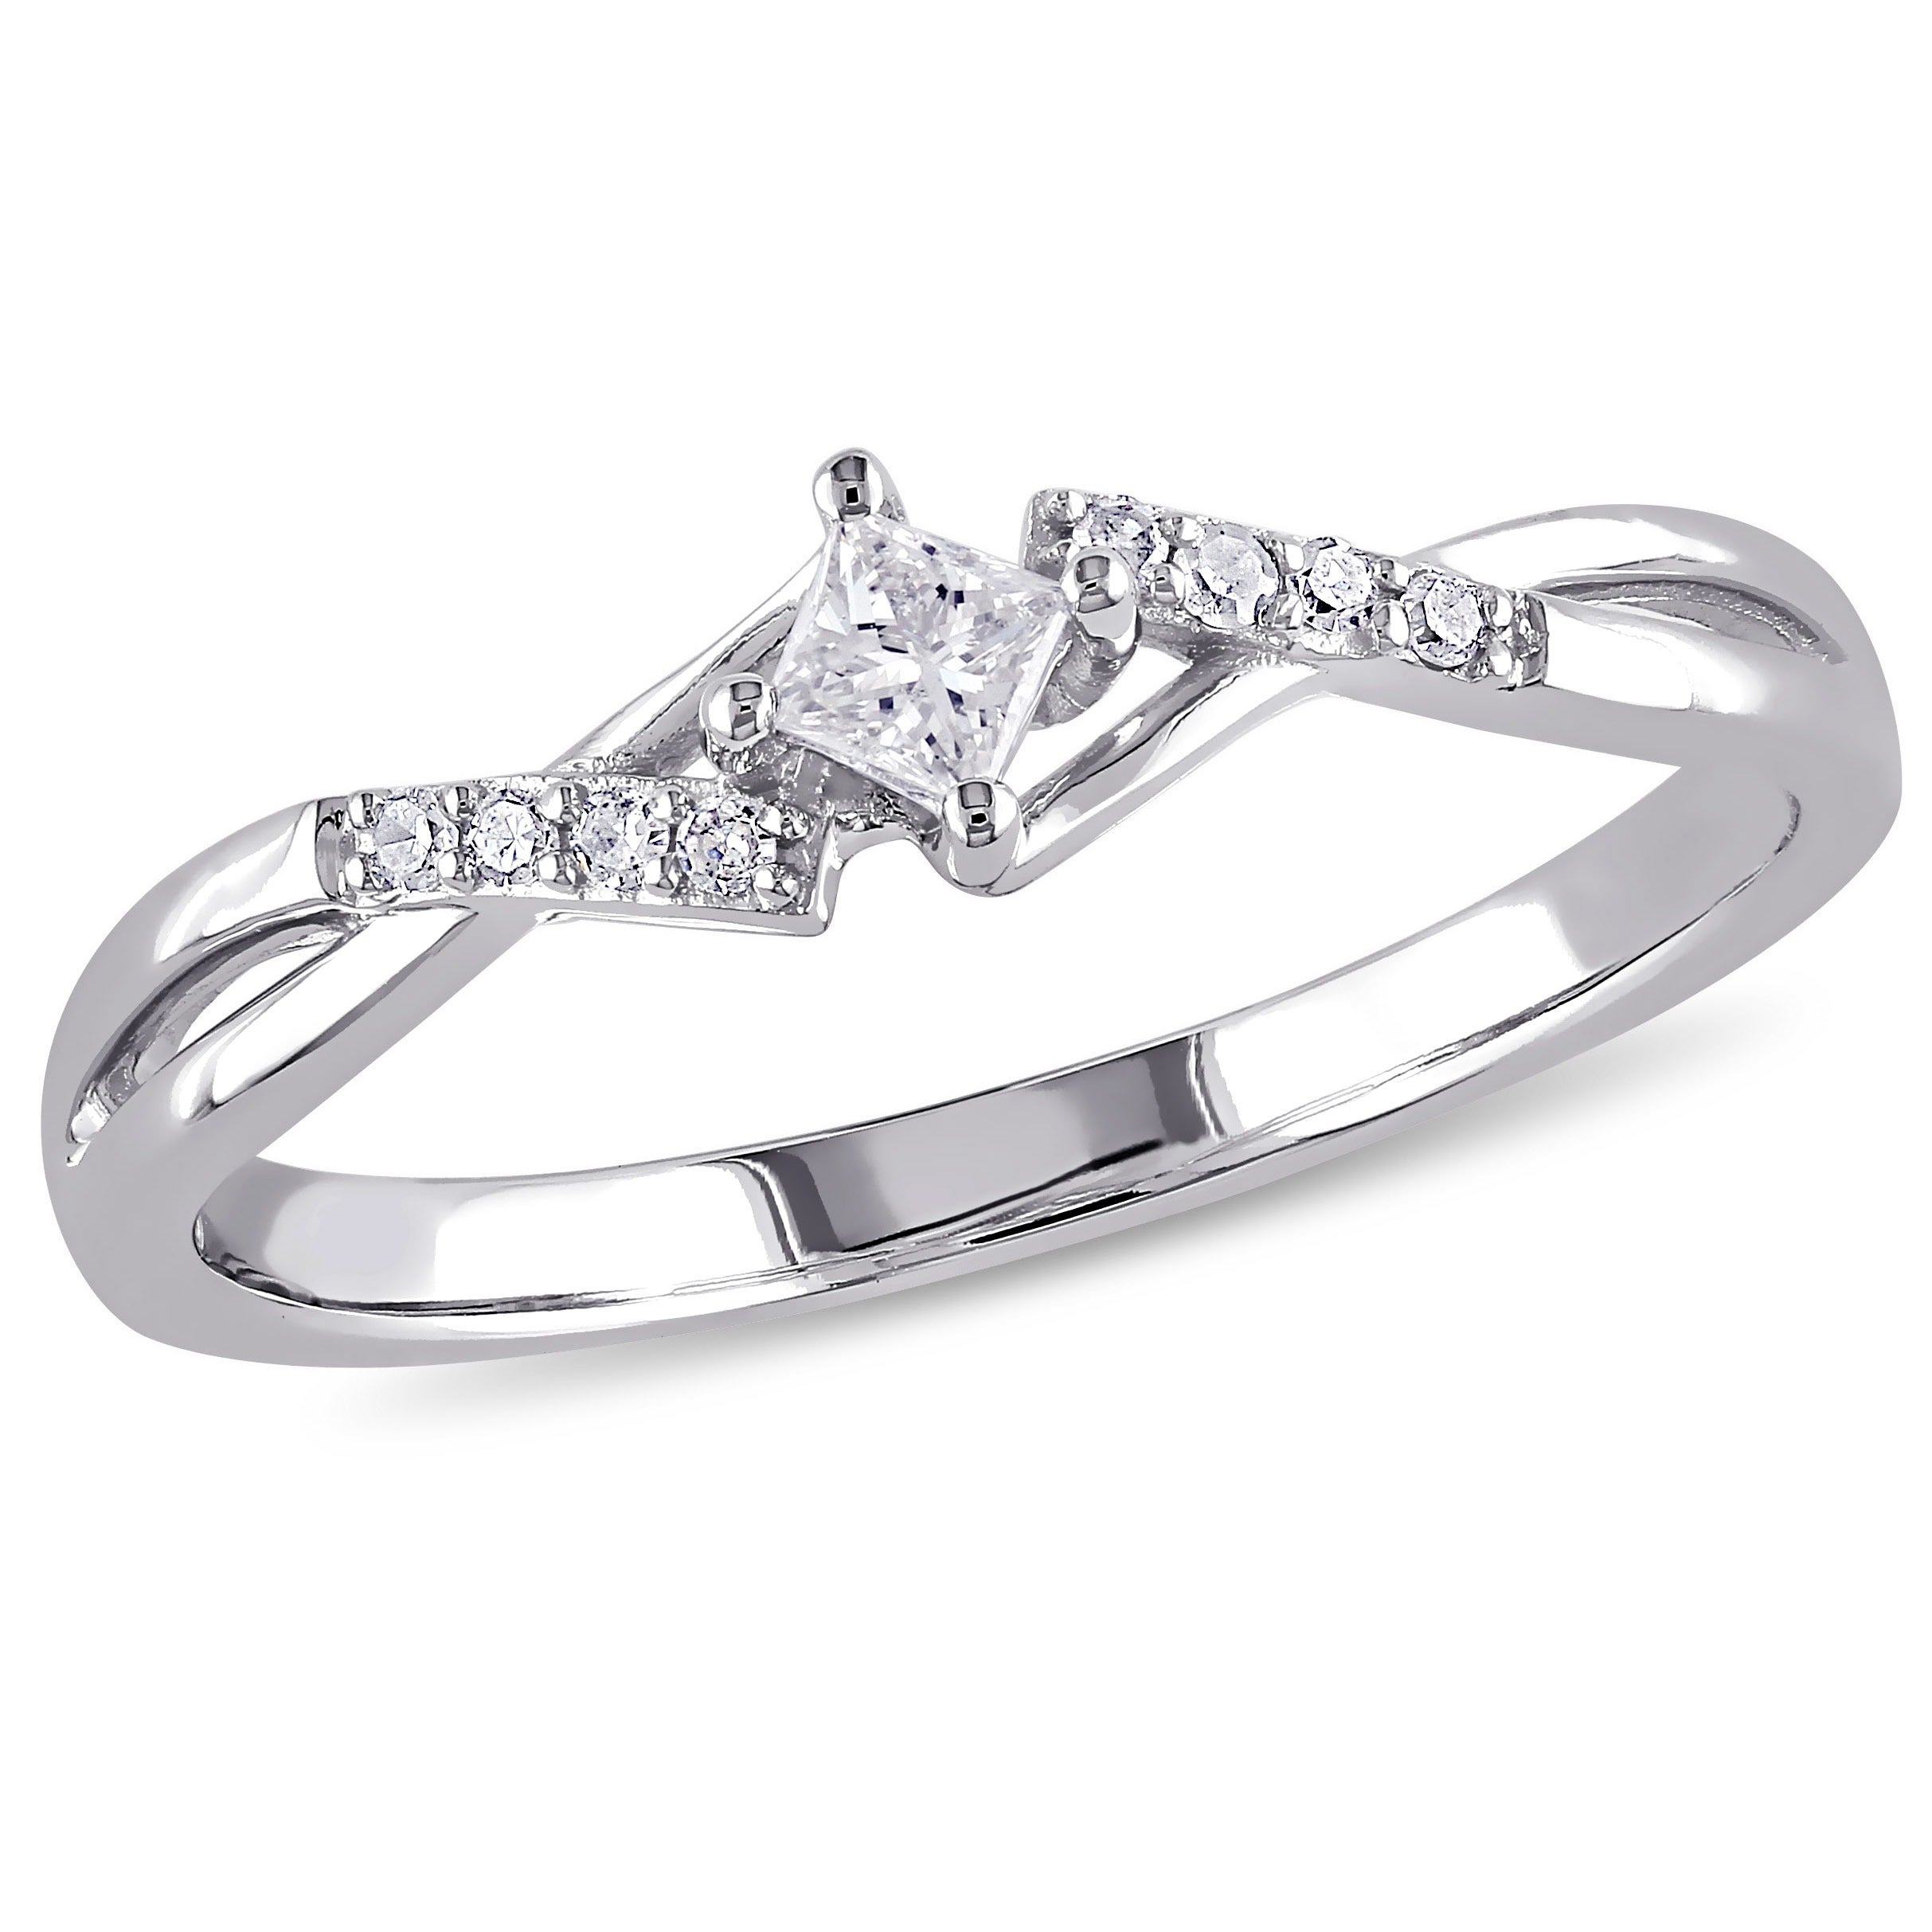 rings cross diamond wedding unusual engagement promise unique popular